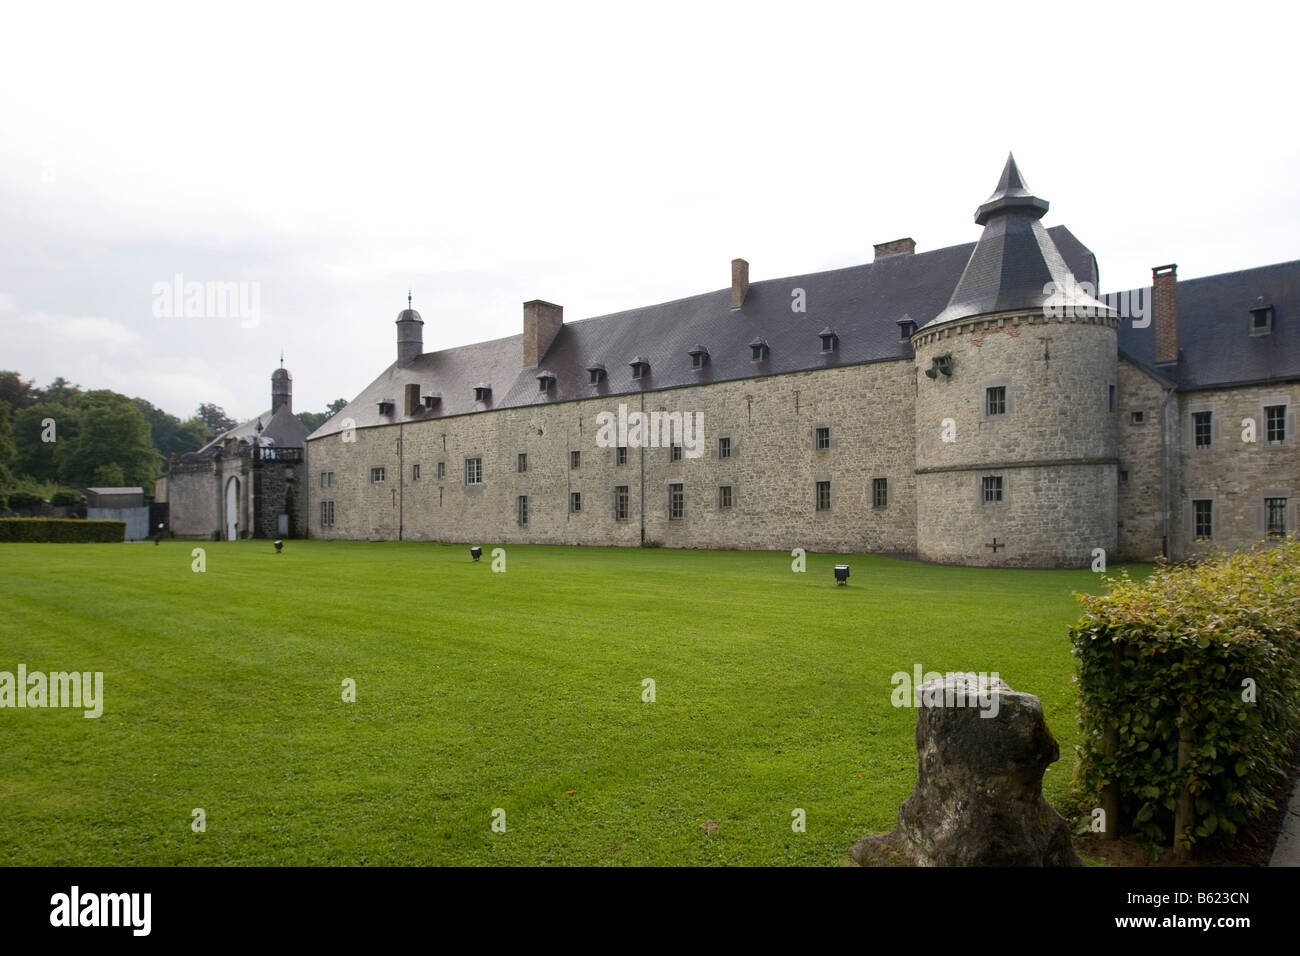 Château de Modave, Castle of Modave, Modave, Liège Province, Belgium, Europe Stock Photo